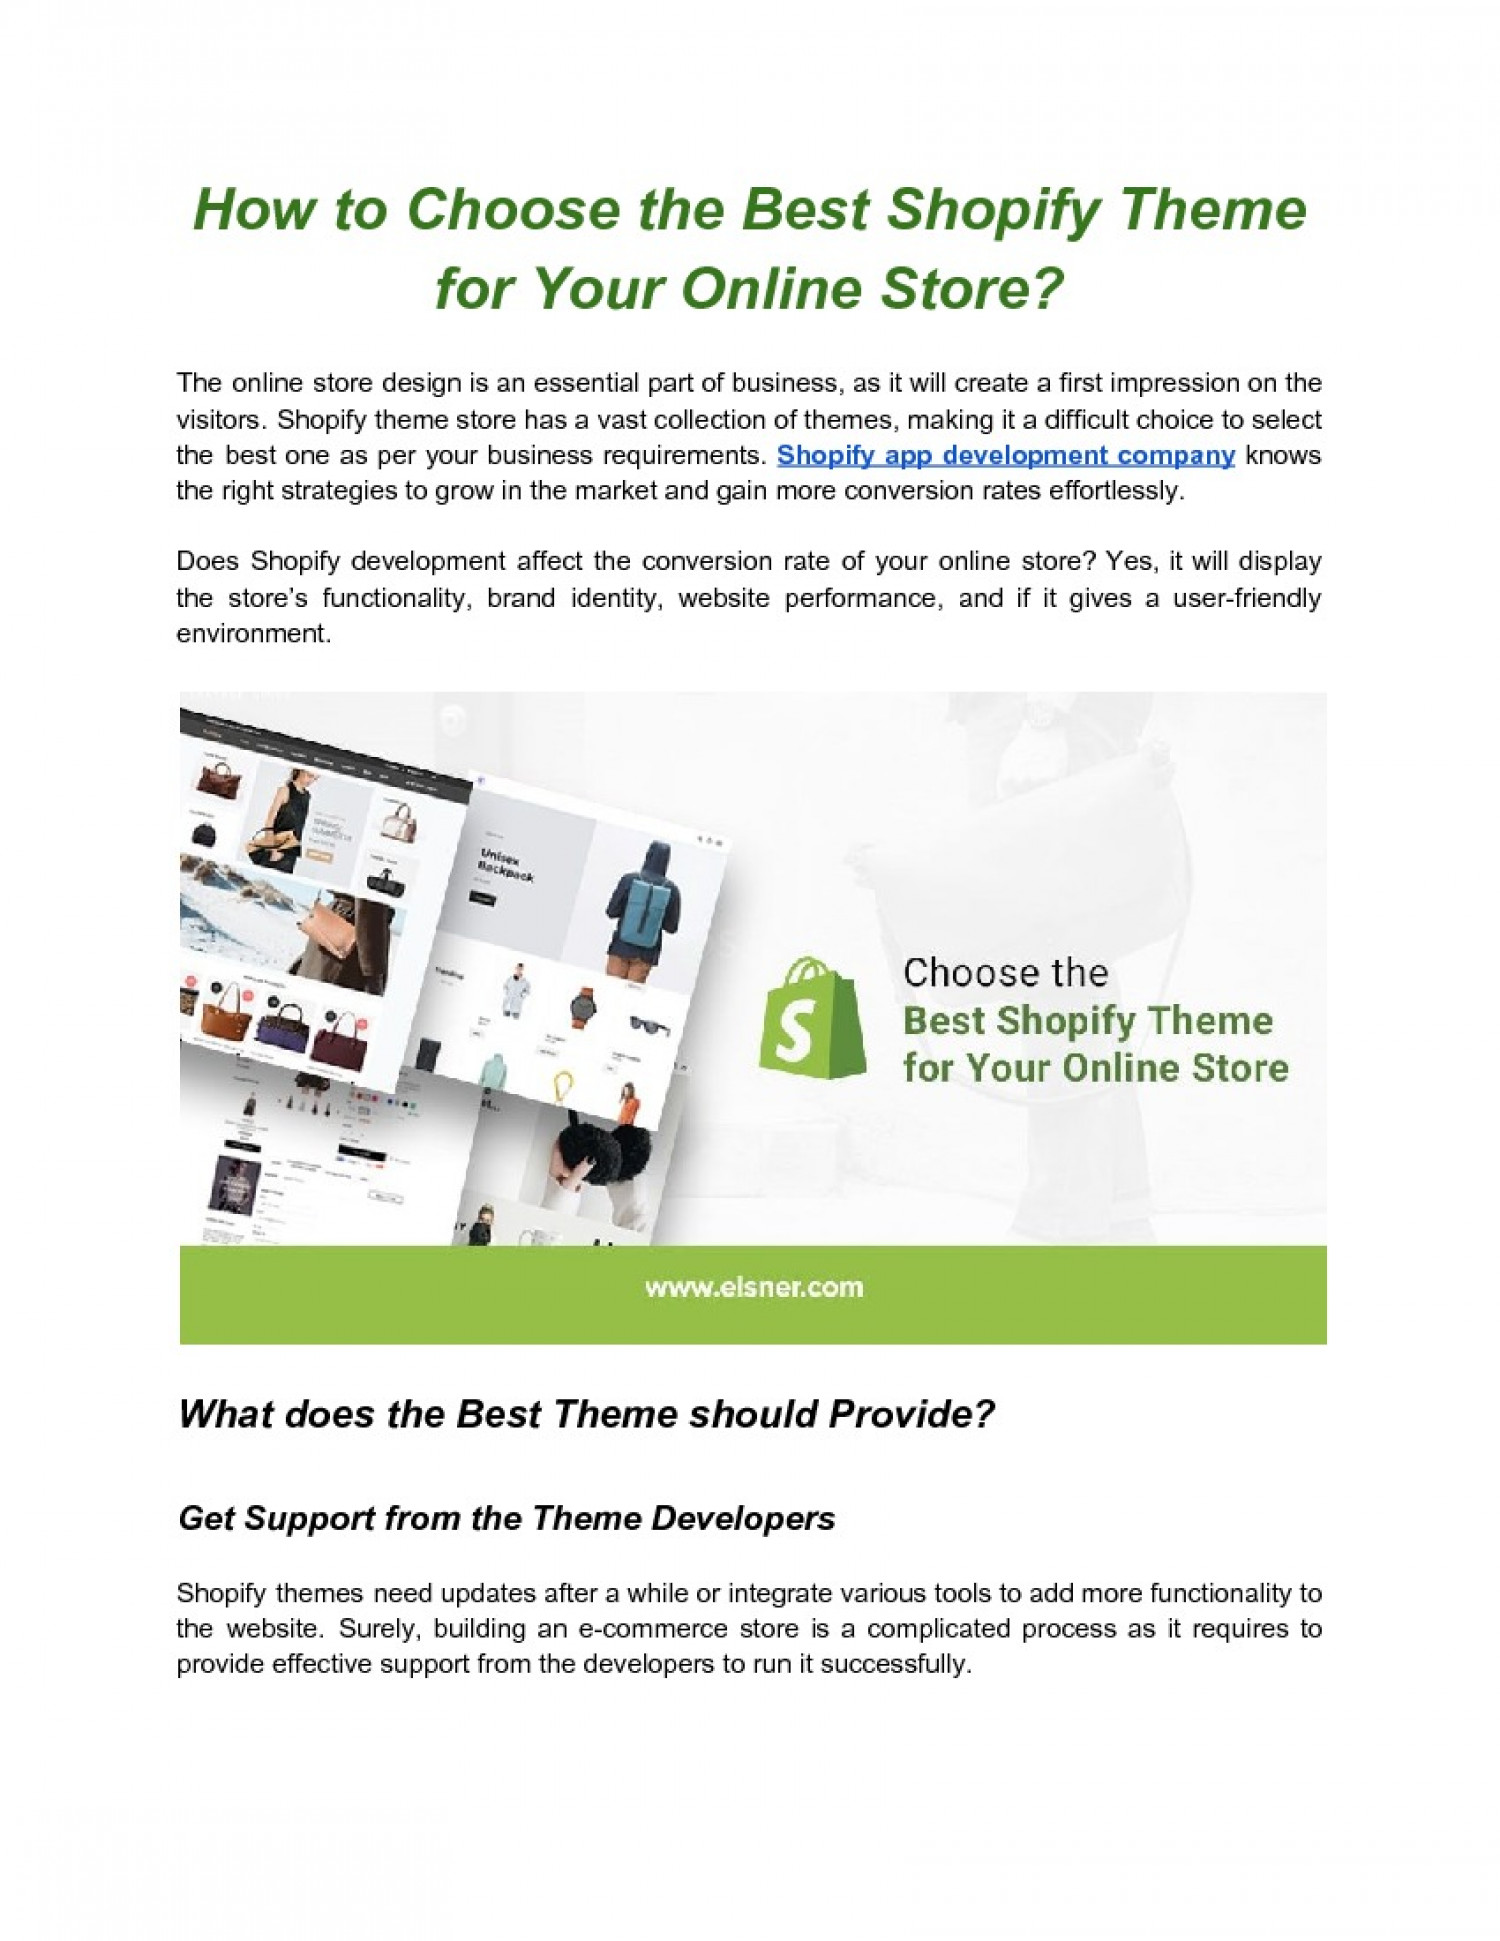 How to Choose the Best Shopify Theme for Your Online Store? Infographic